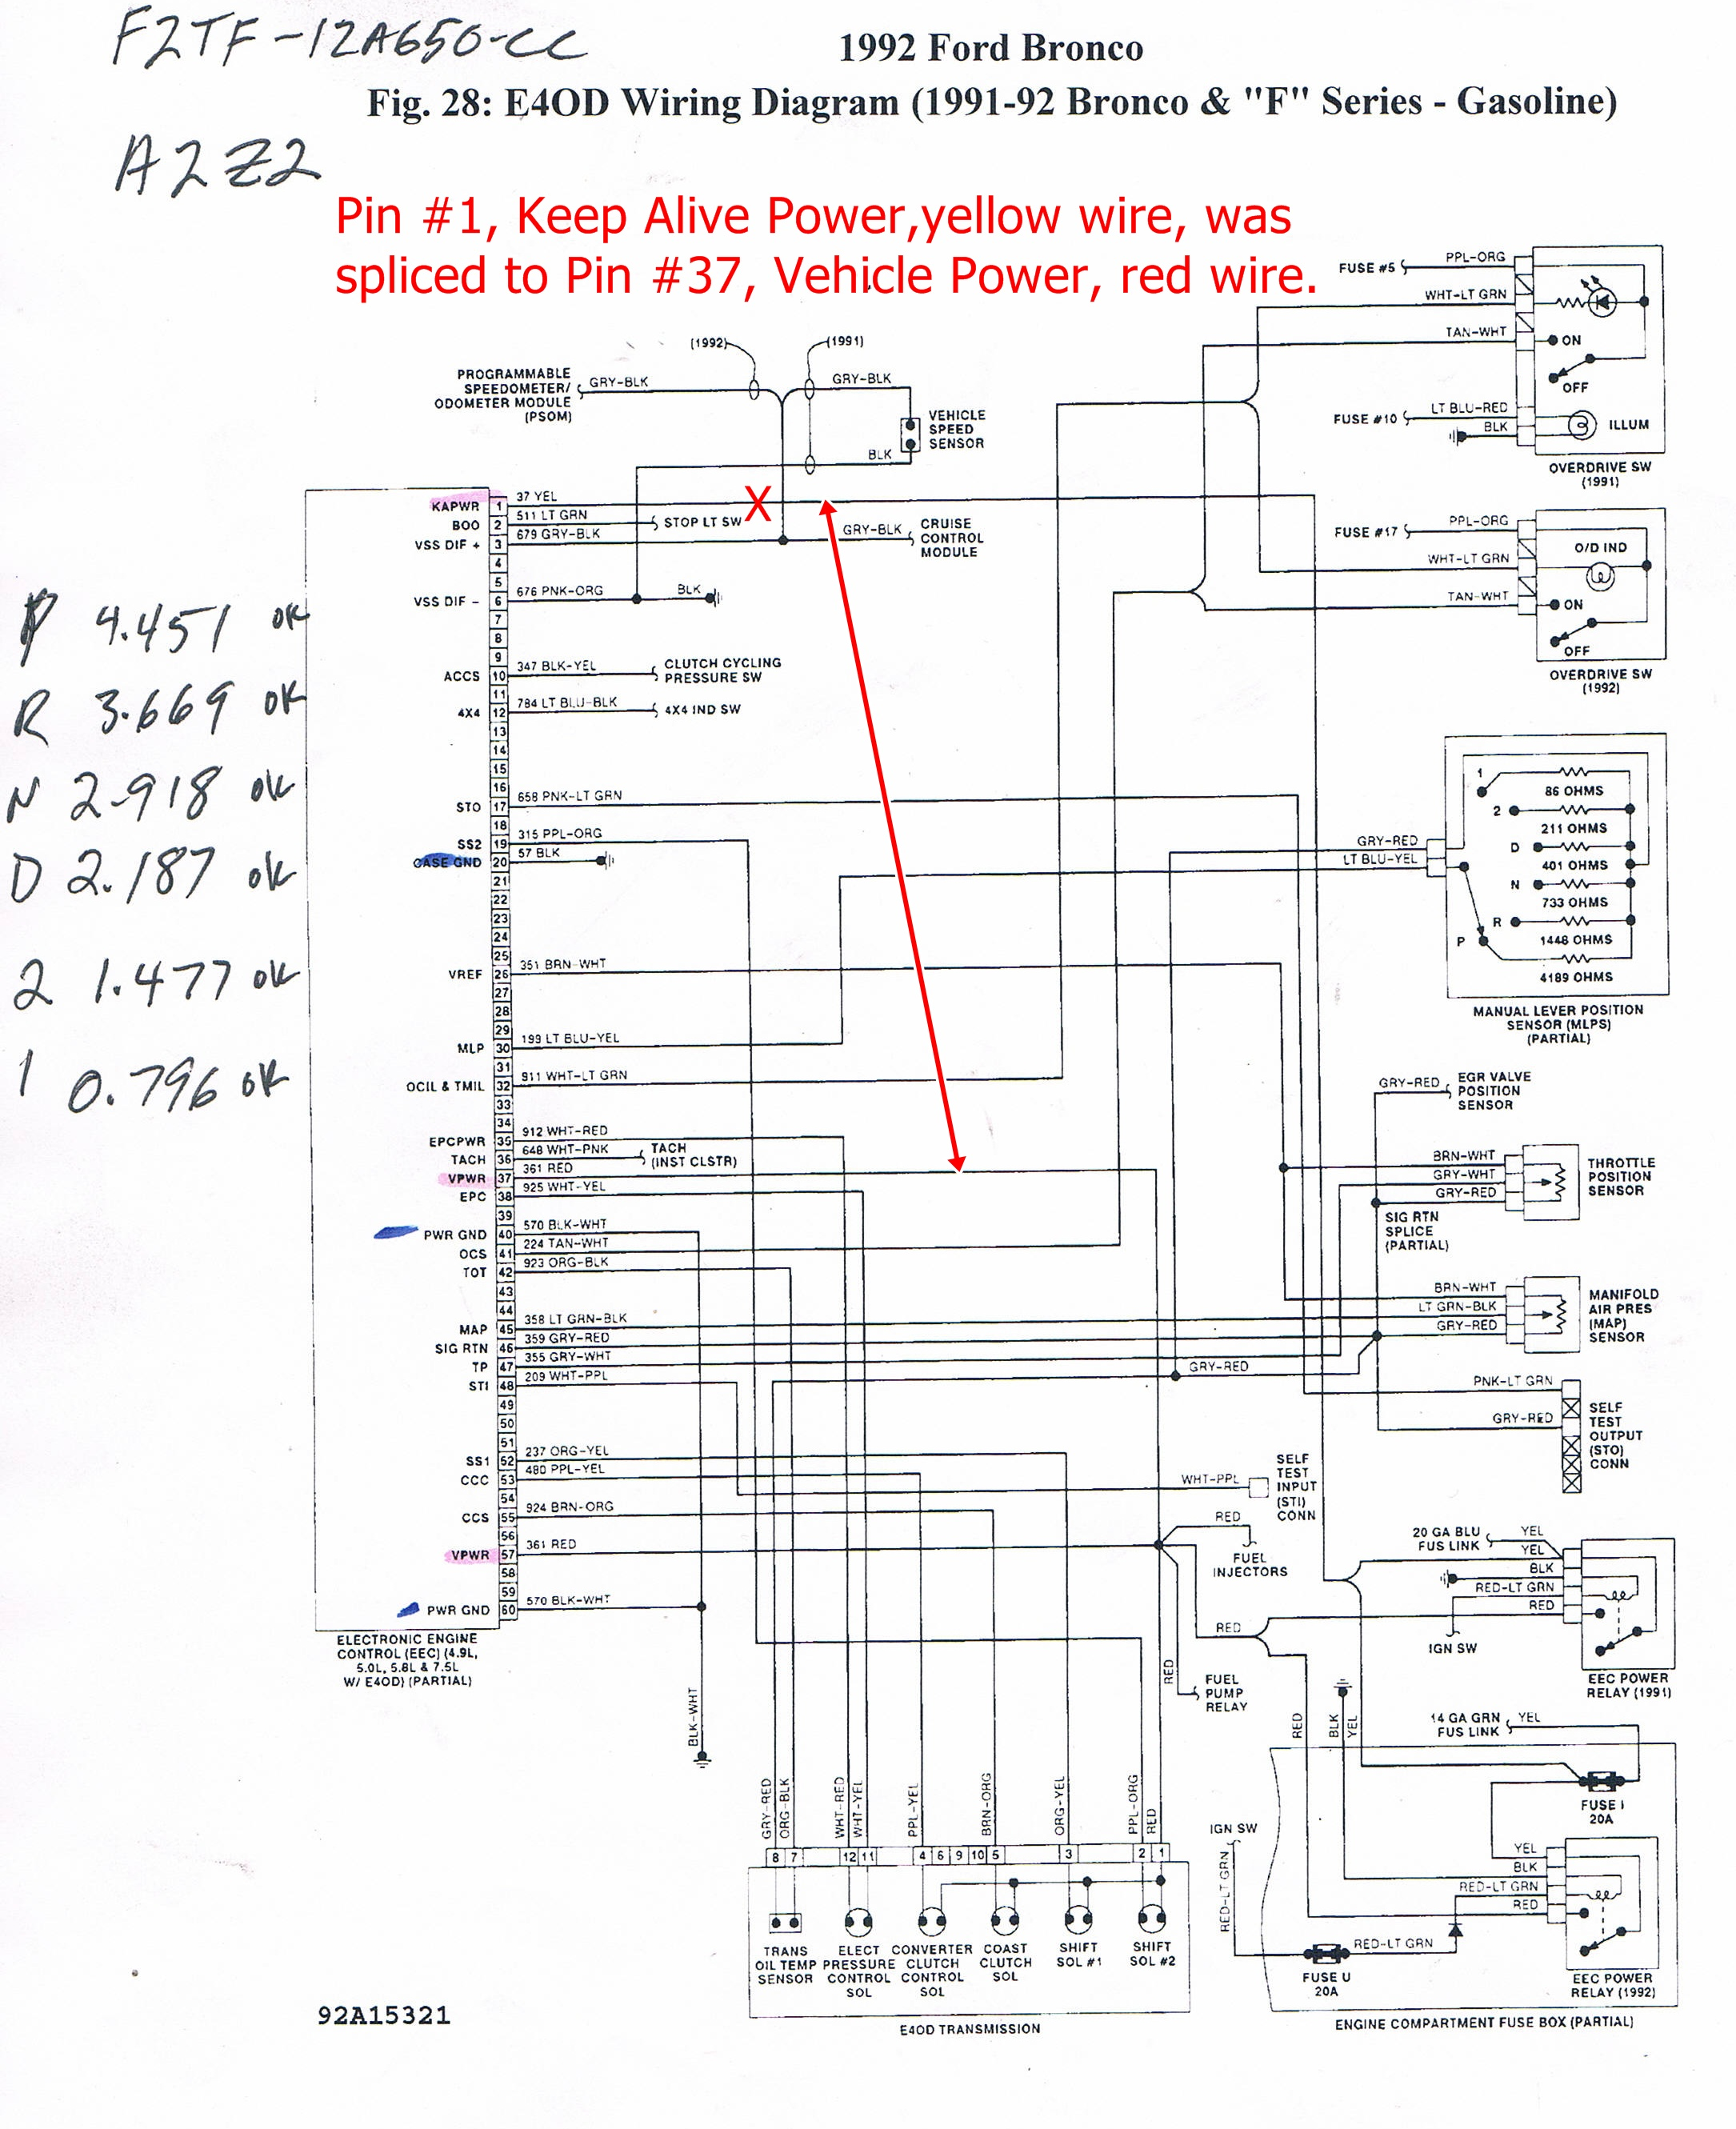 volvo xc70 wiring diagram gigabit cable wiring diagram jeep, Wiring diagram